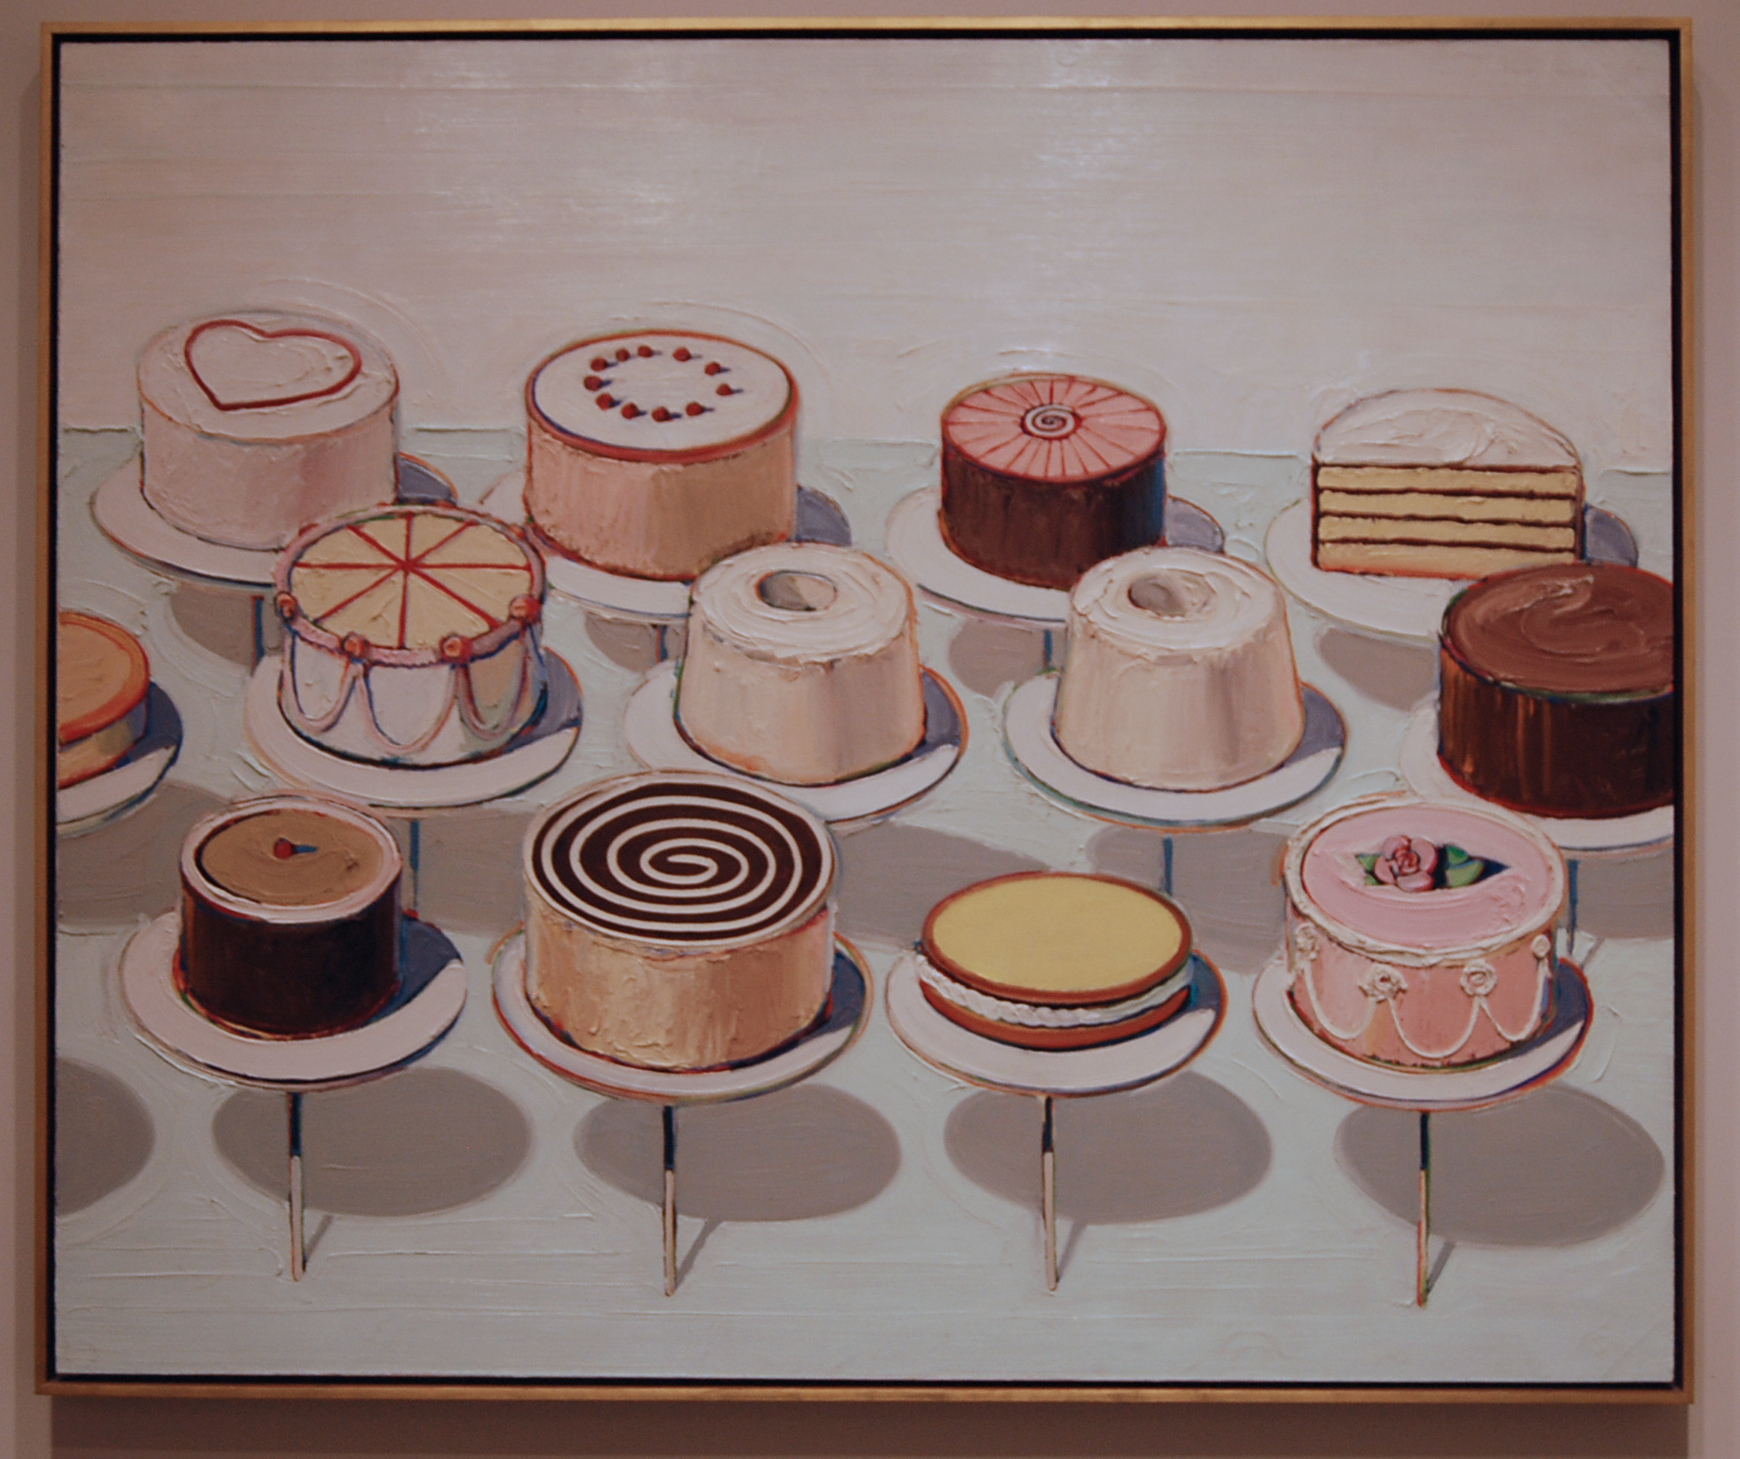 Wayne Thiebaud Cakes 1963 Thinkvisual s Blog